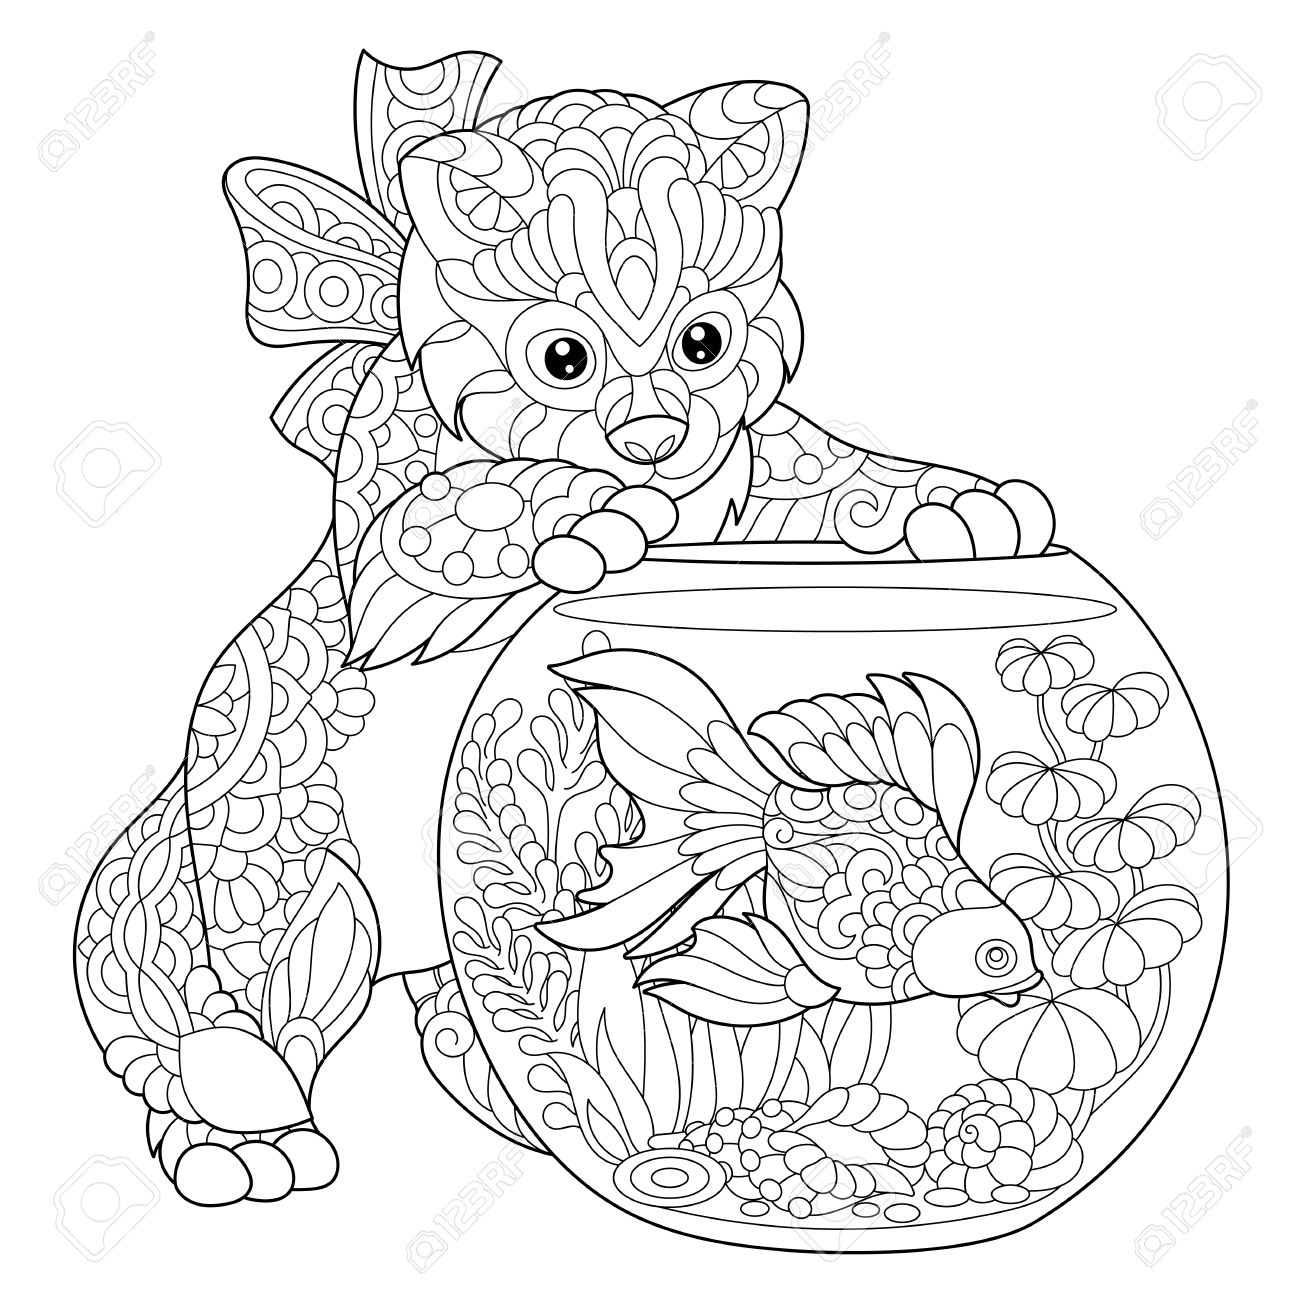 Coloring Page Of Kitten Wondering About Goldfish In Aquarium